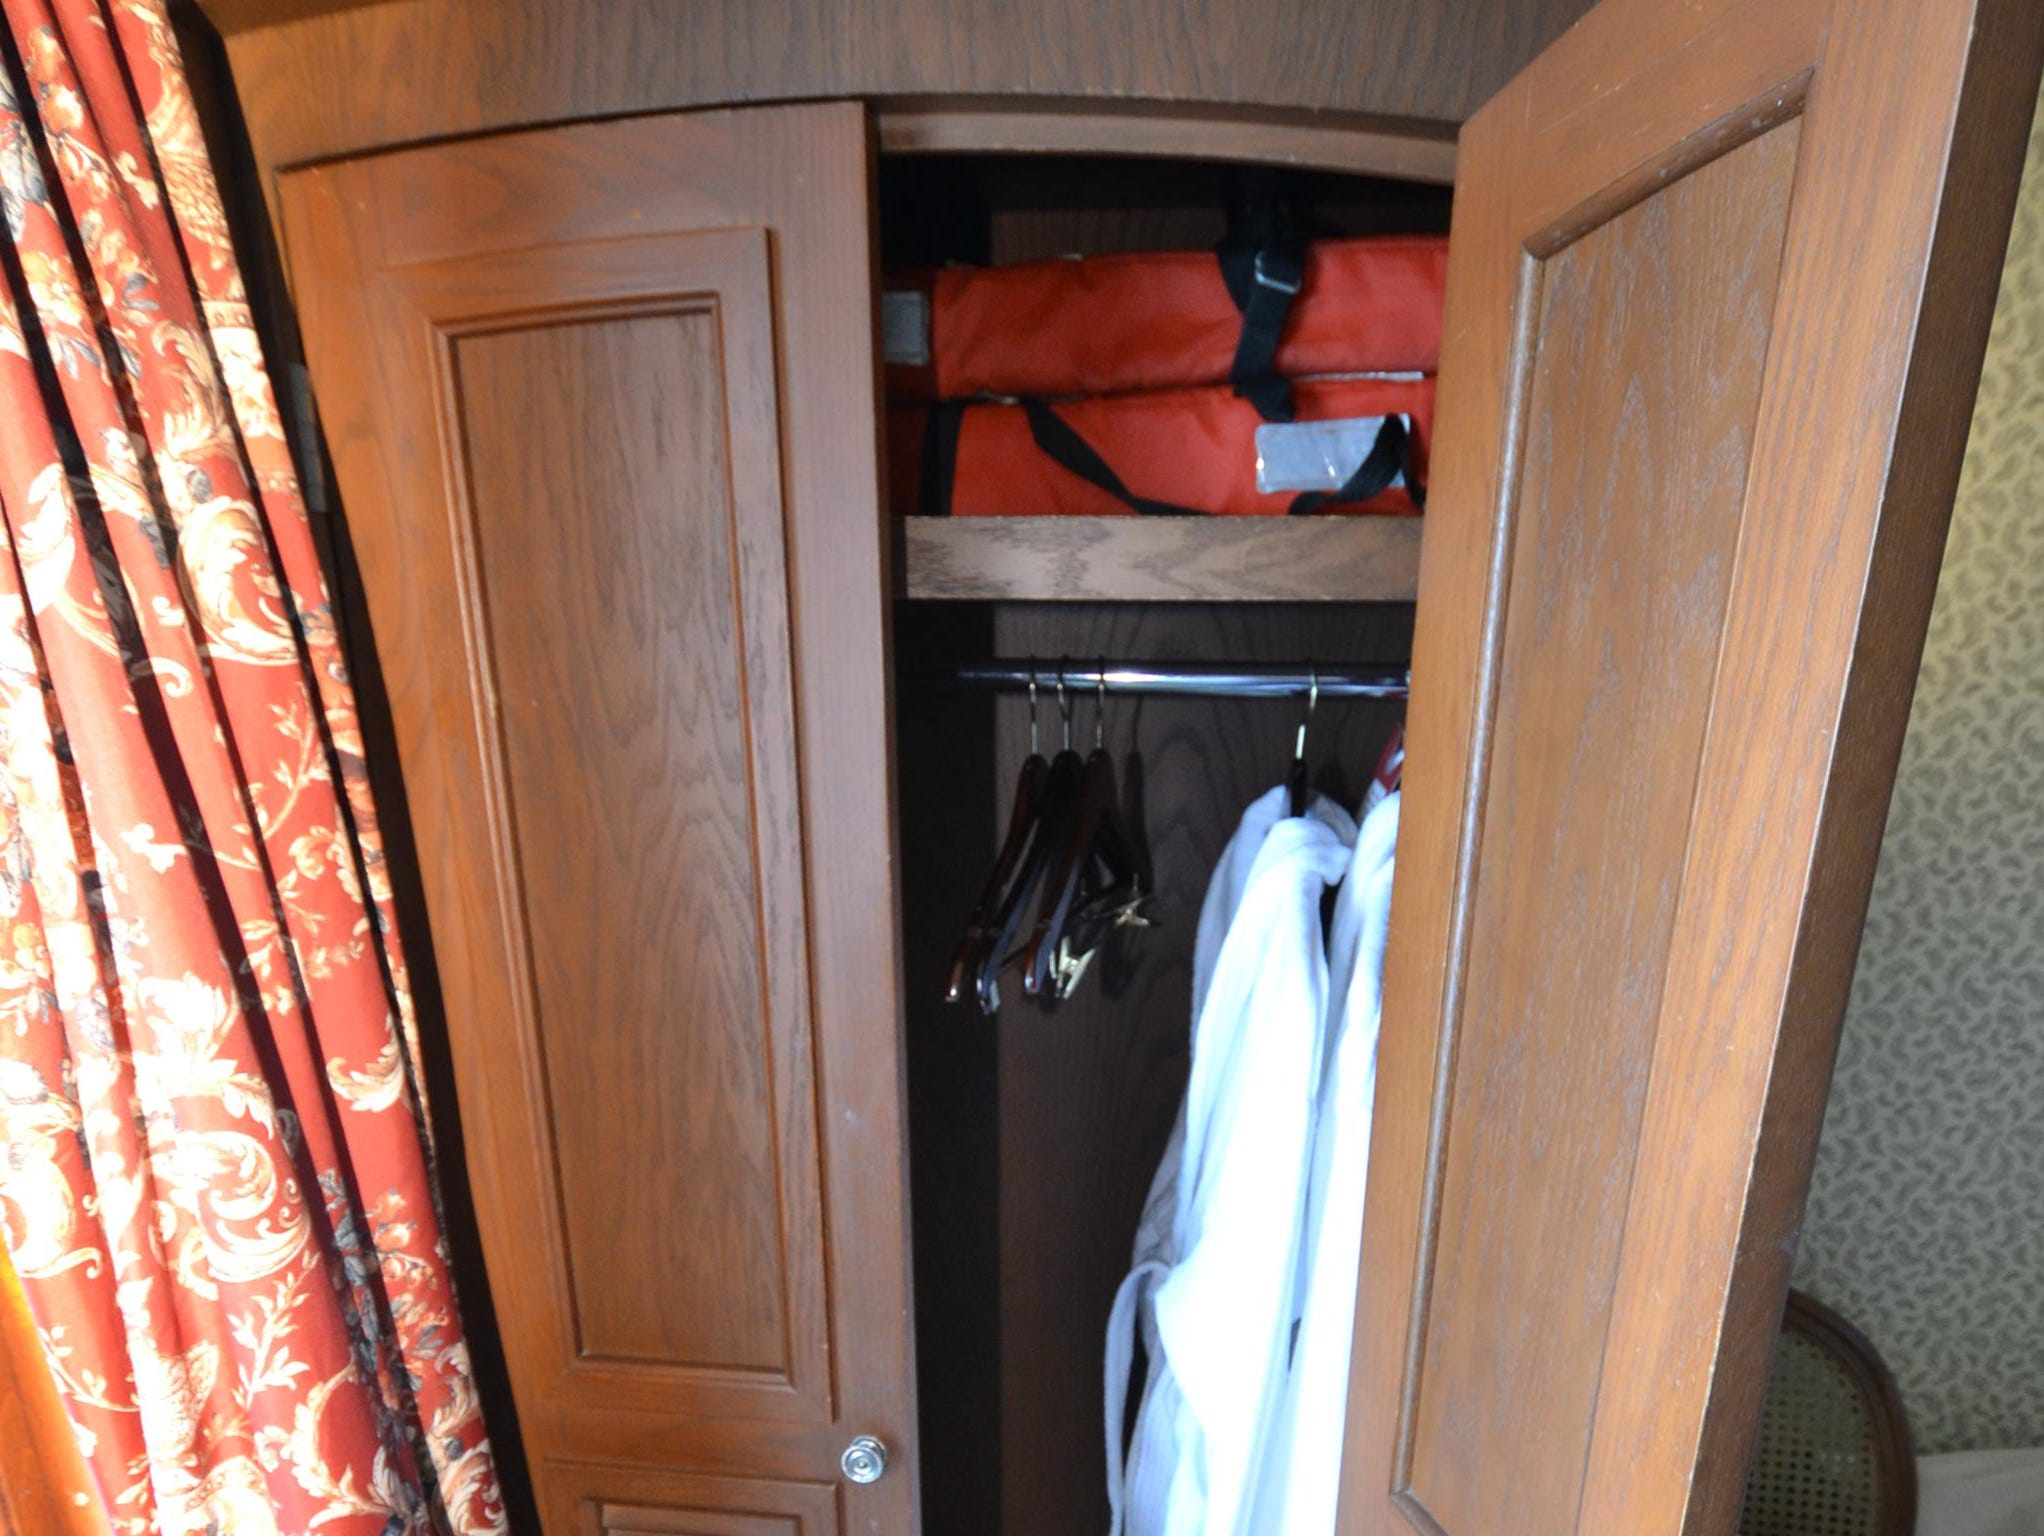 The interior of the California room's armoire.